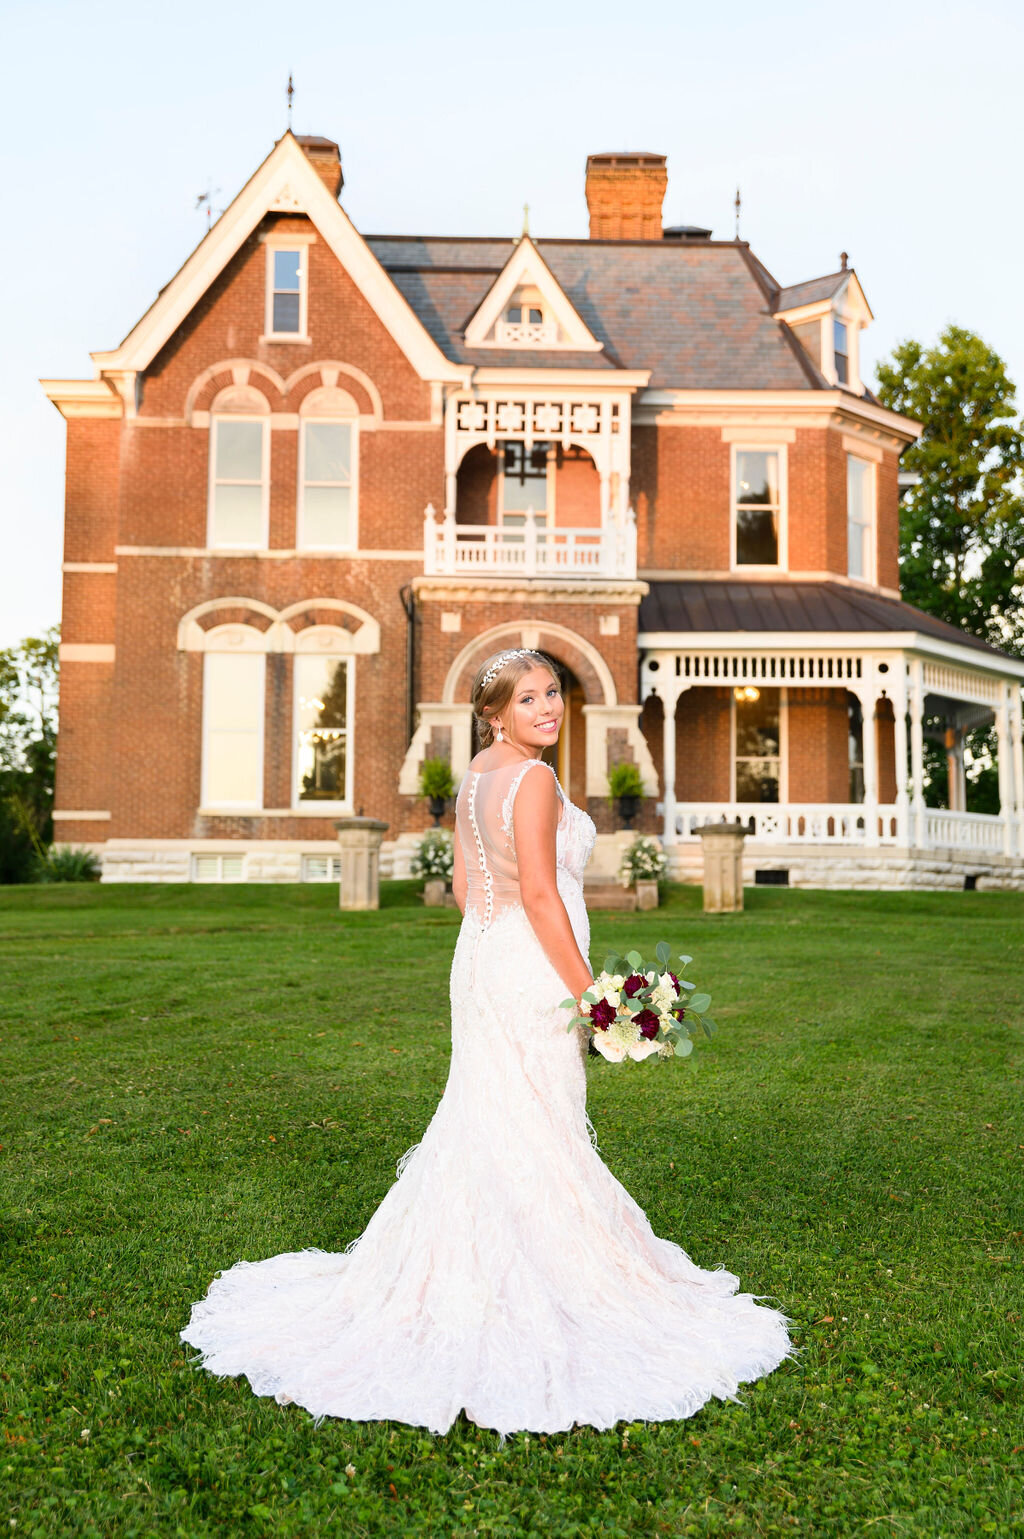 Lynwood Estate - Luxury Richmond Kentucky Wedding Venue - Elegant Estate Wedding 00029